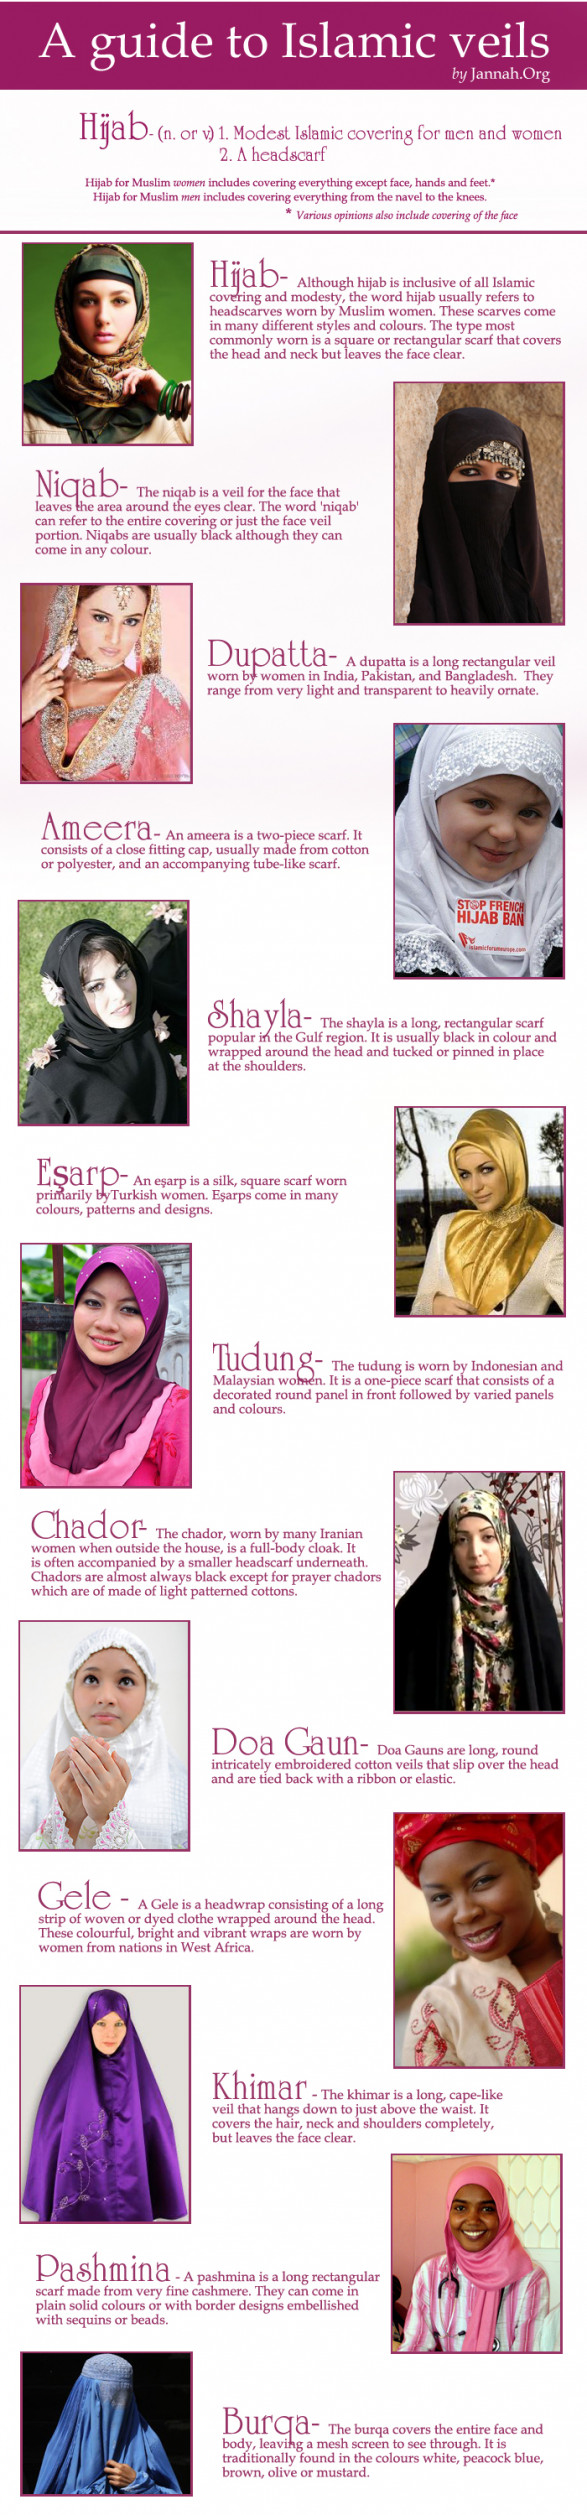 A Guide to Islamic Veils